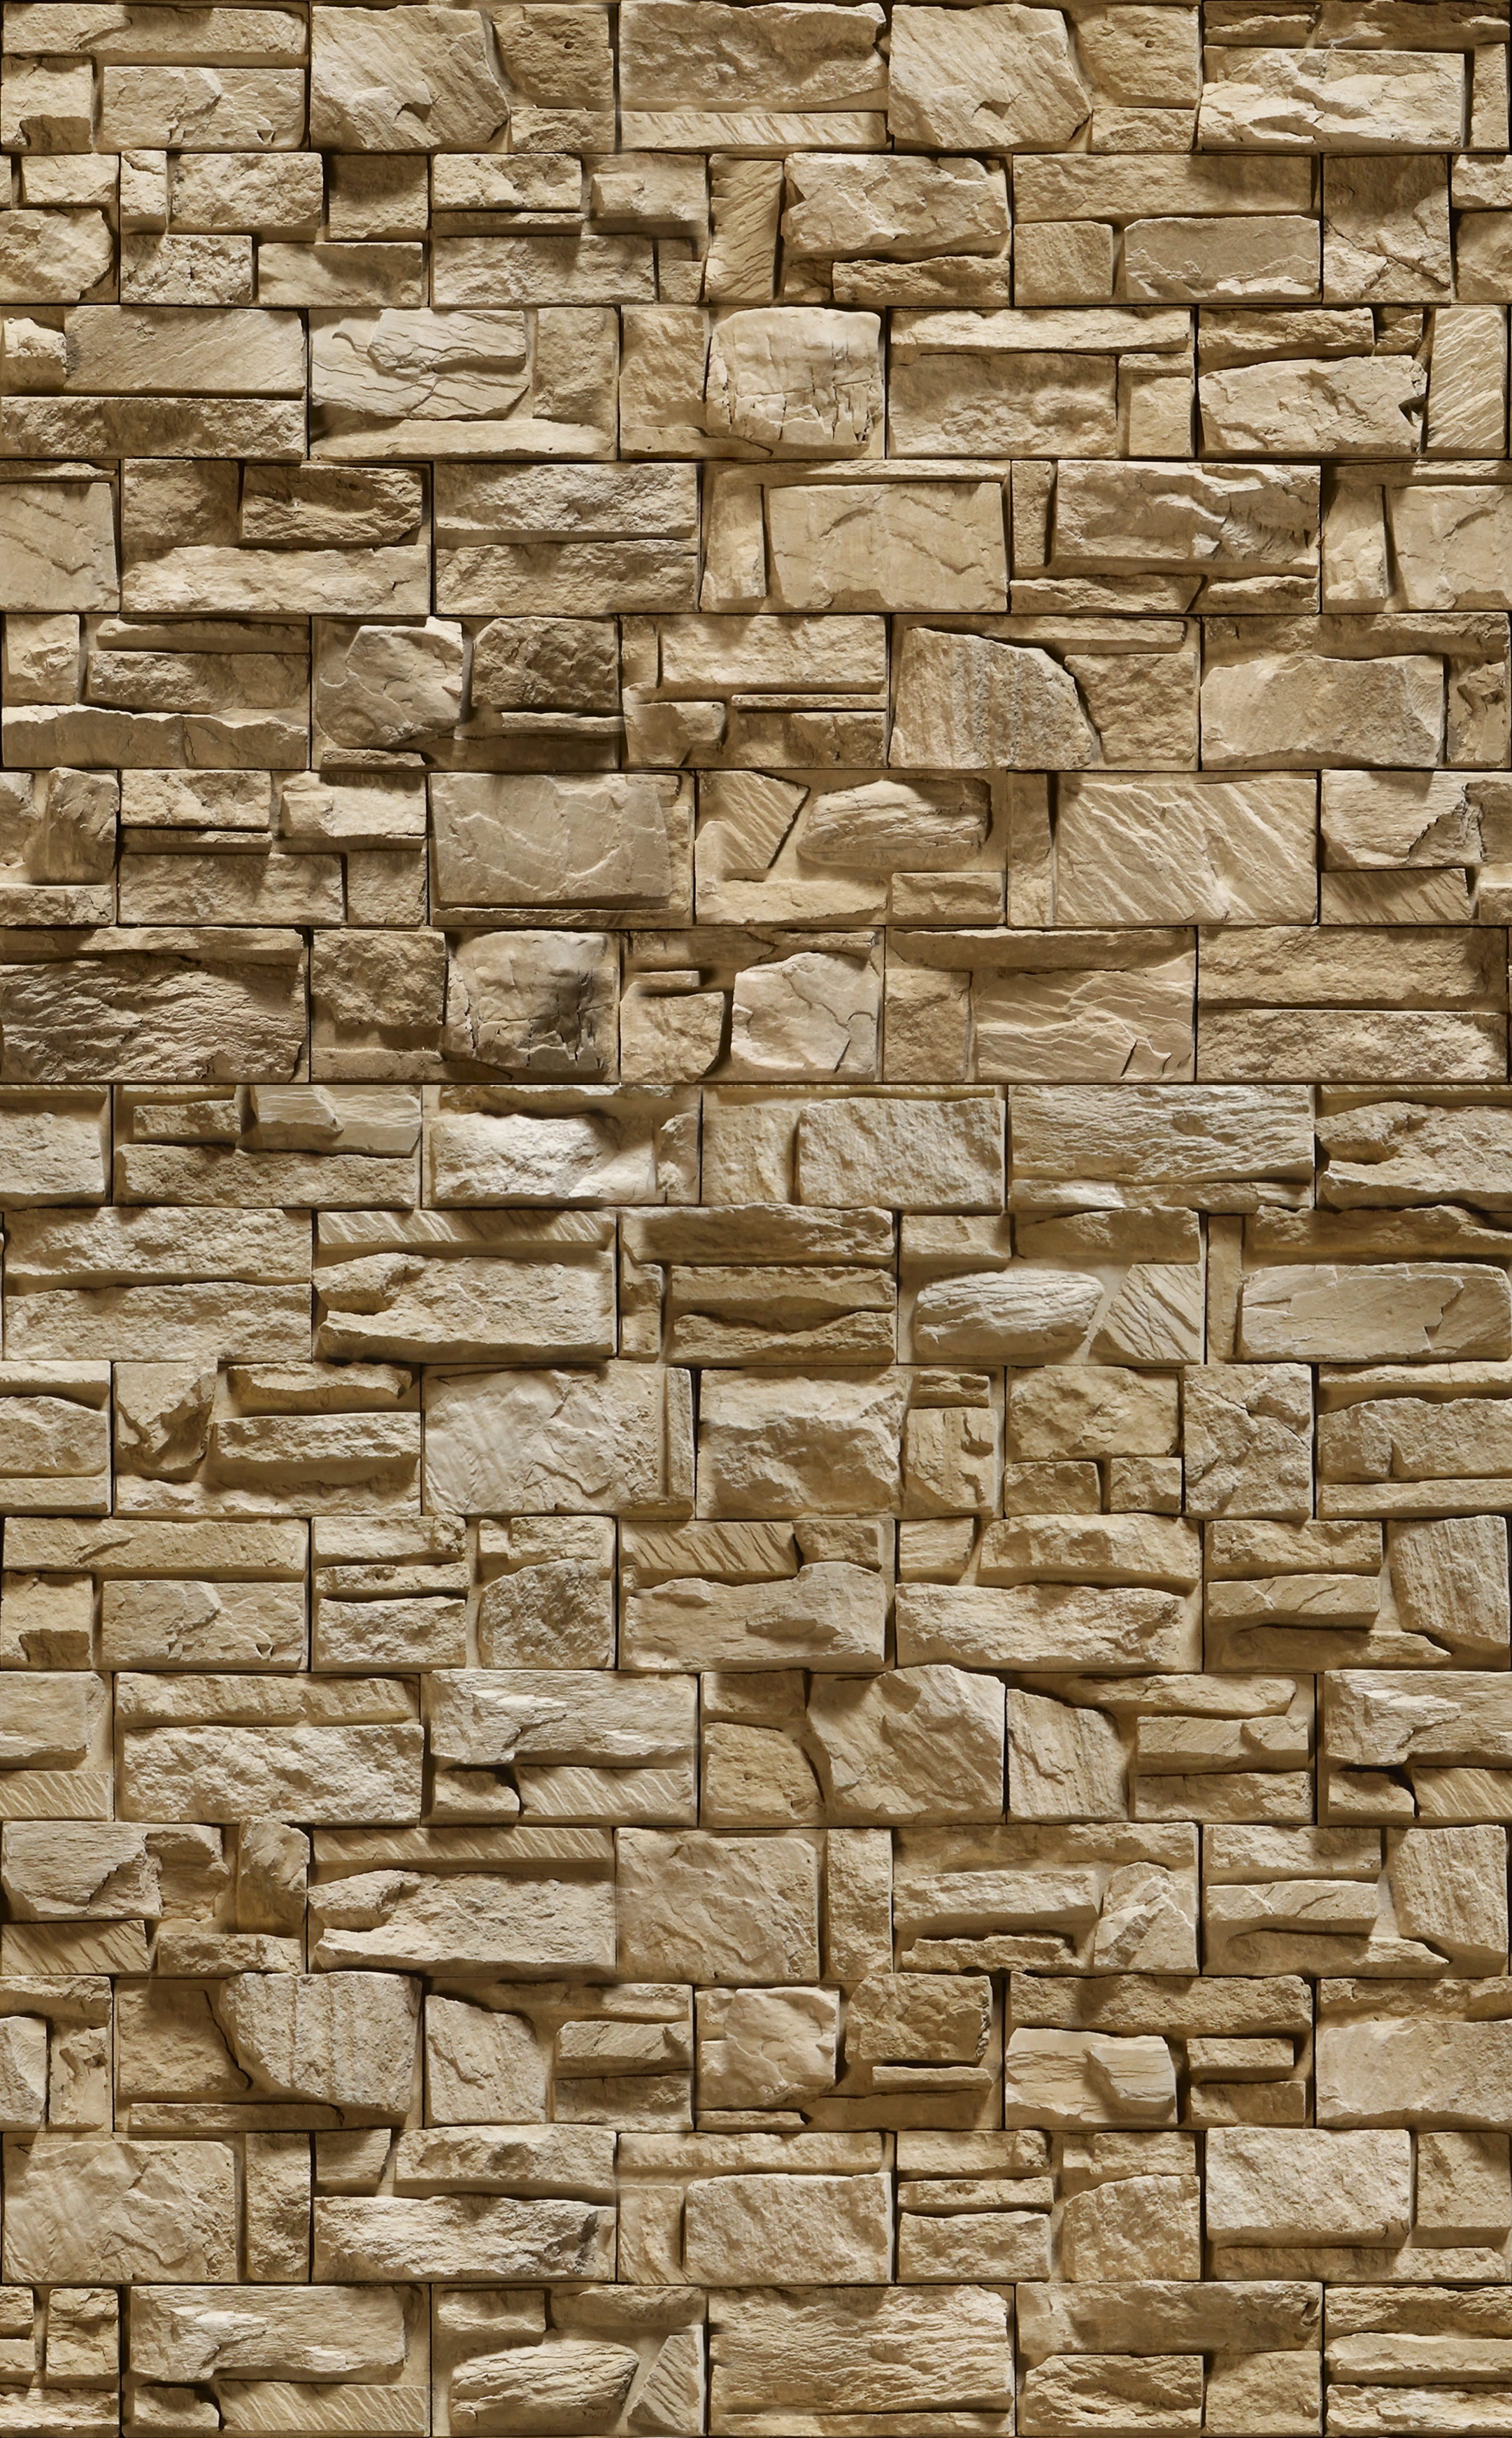 Stone Wall Texture : Stone wall texture download